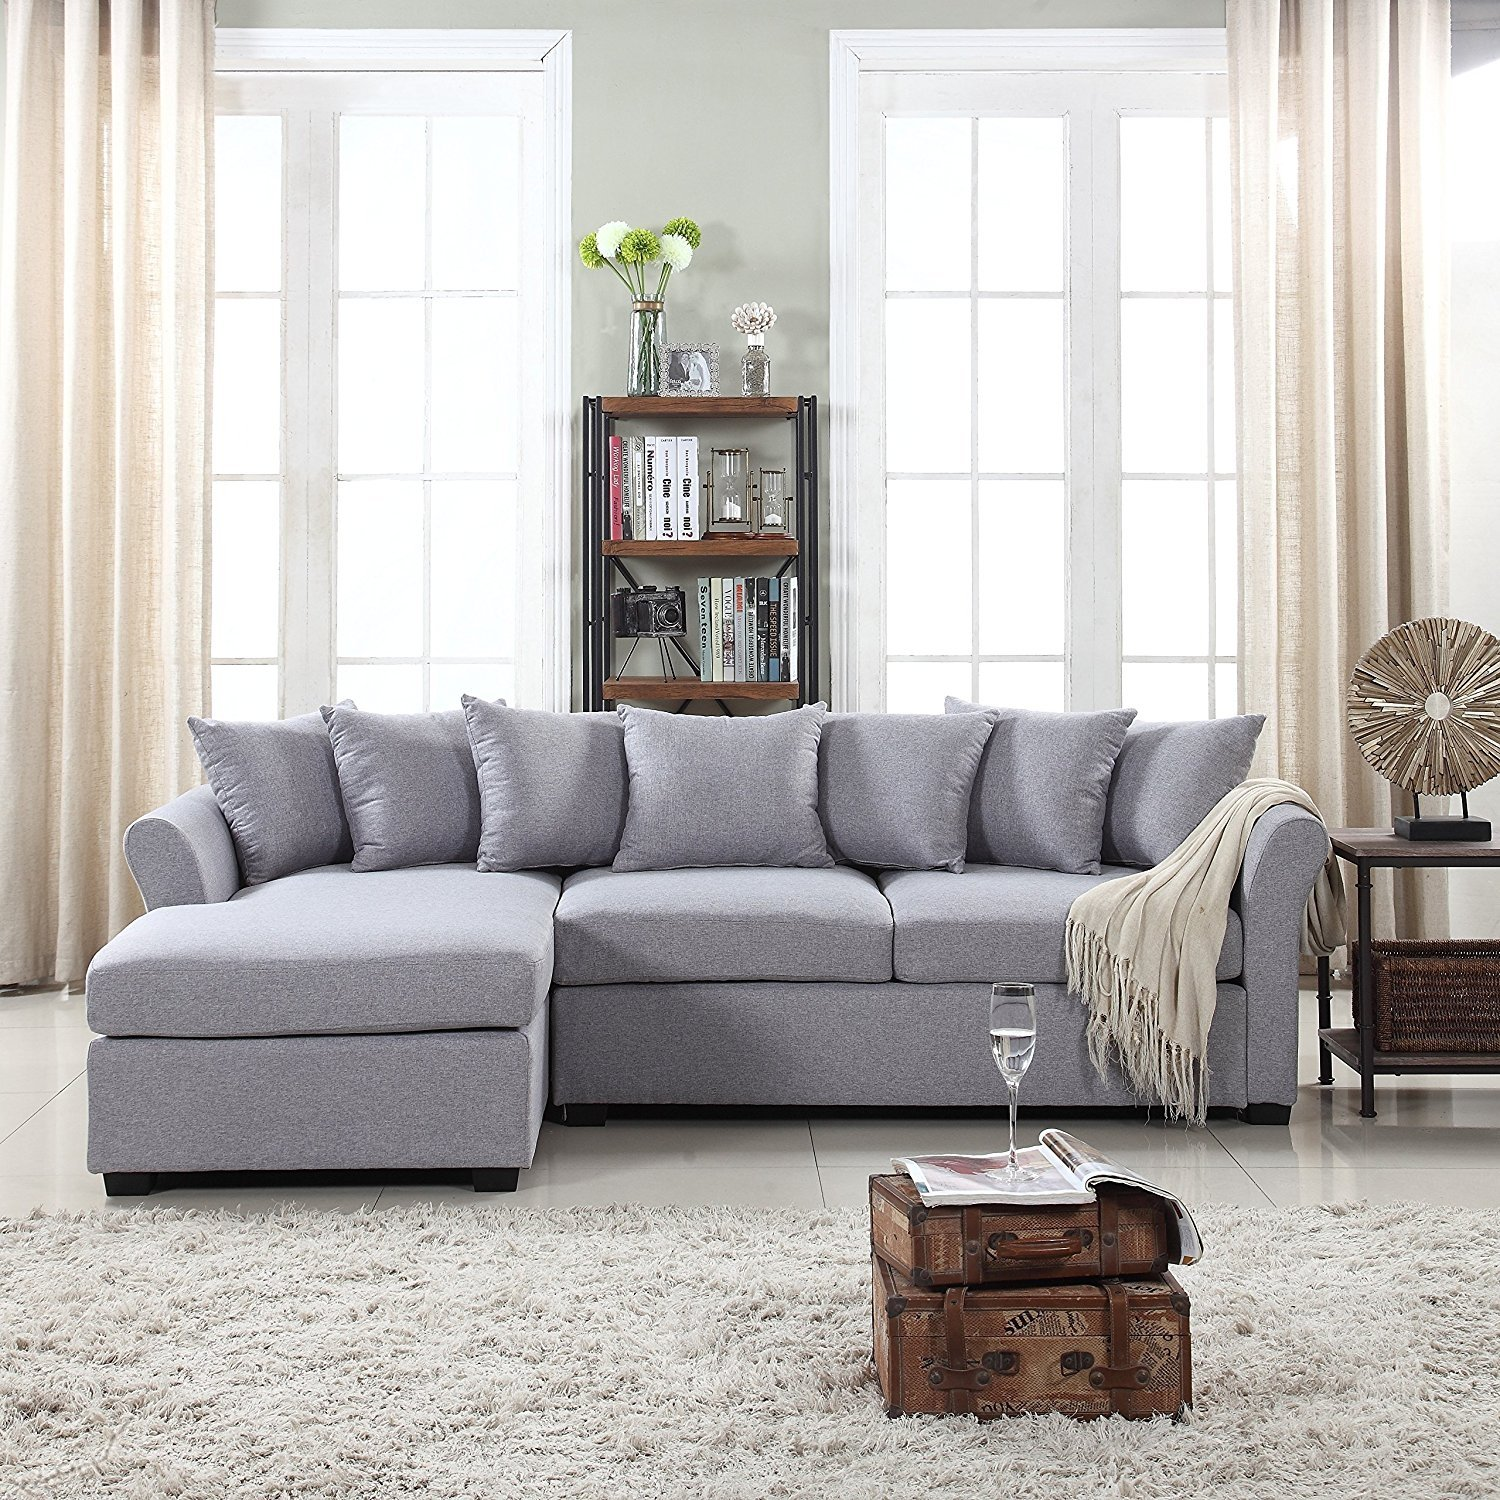 details about modern large fabric sectional sofa l shape couch extra wide chaise grey